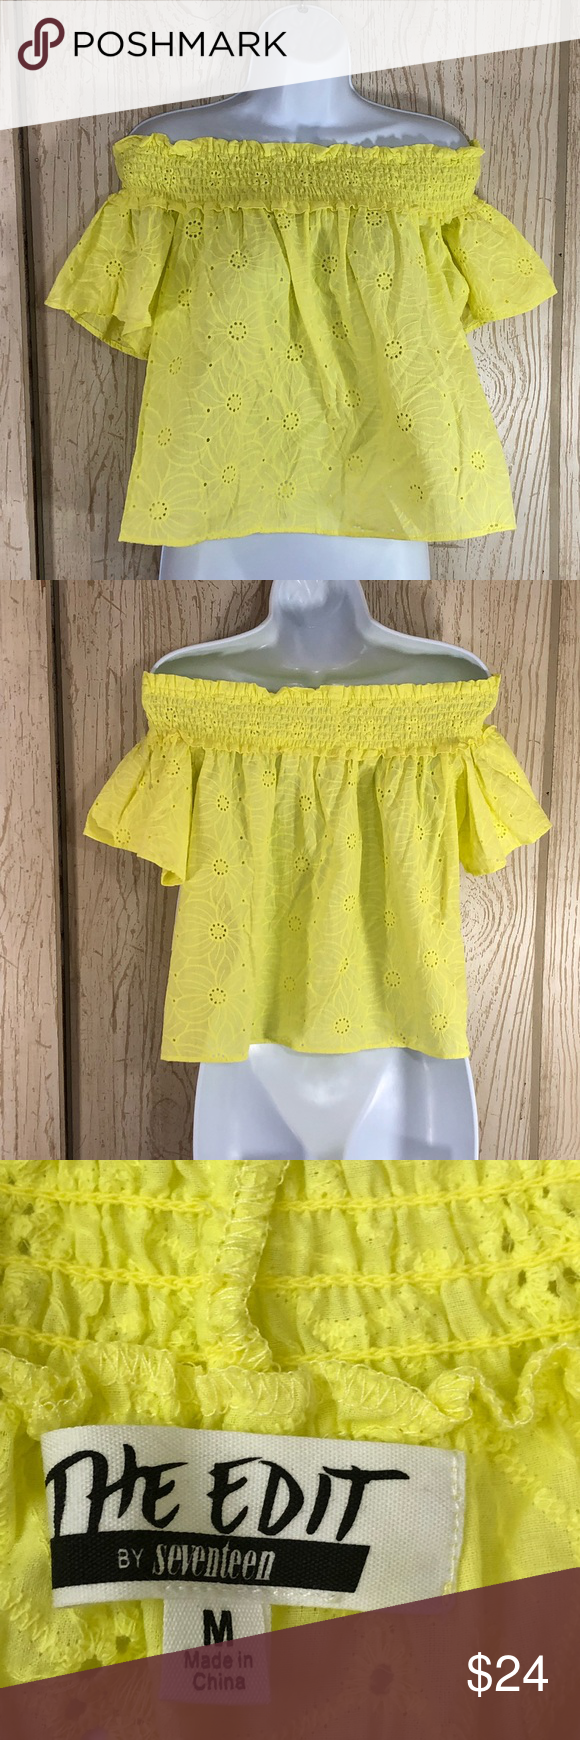 0a185fe8c9cbc The Edit by Seventeen Off-The -Shoulder Crop Top M NWT Junior Color is  Yellow Style is 2177022 Eyelet material Smocked top Short sleeves Please  see pictures ...